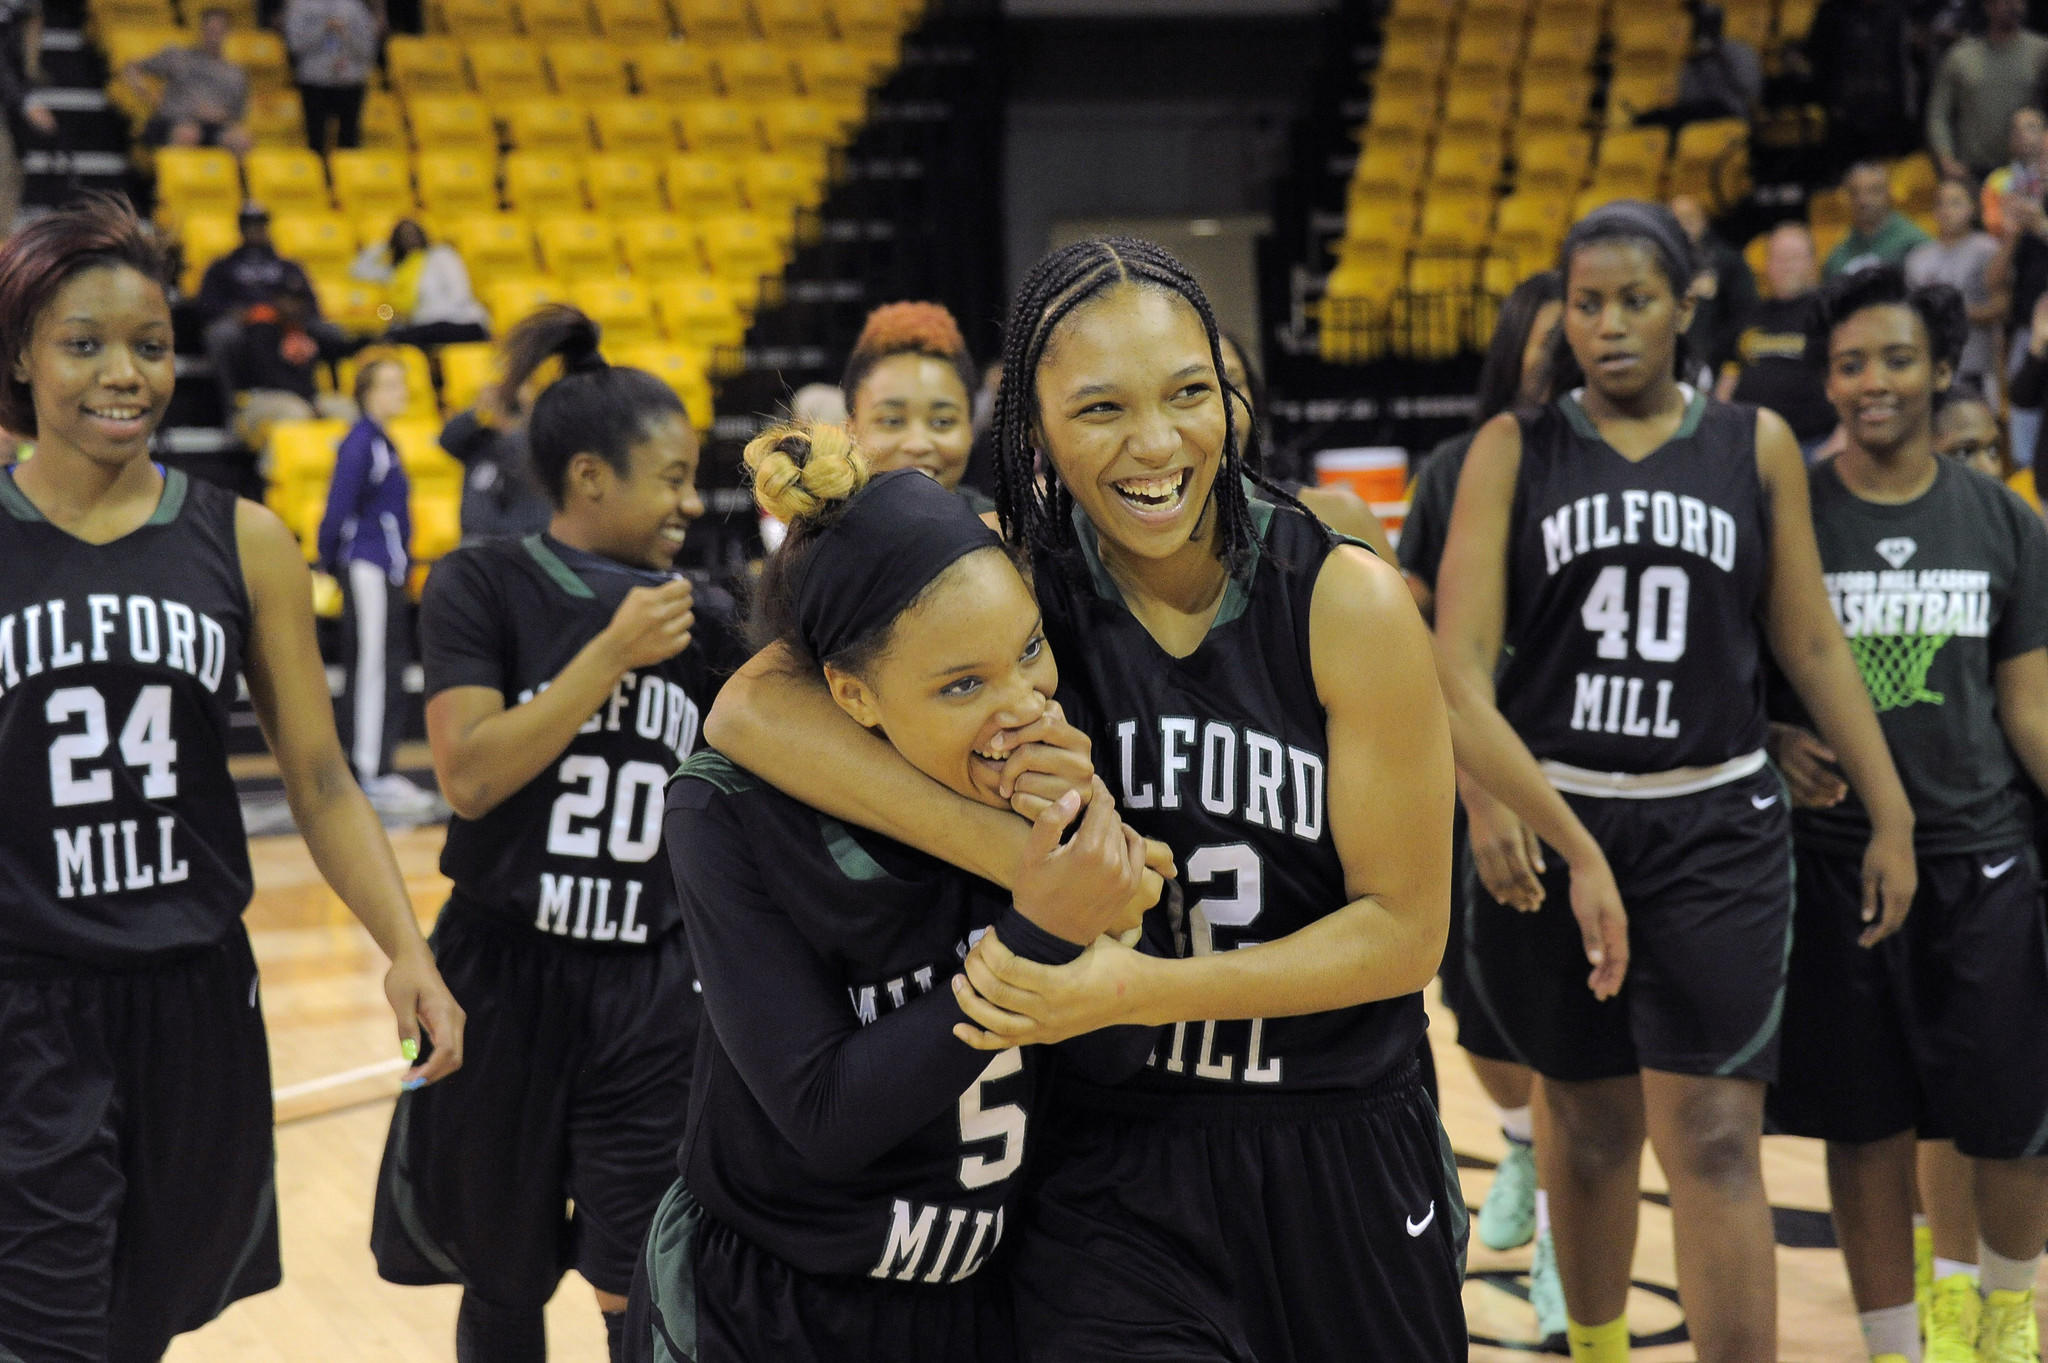 Milford Mill's Kelli Smoot (5) and Deja McKenzie embrace after their Class 3A state championship.